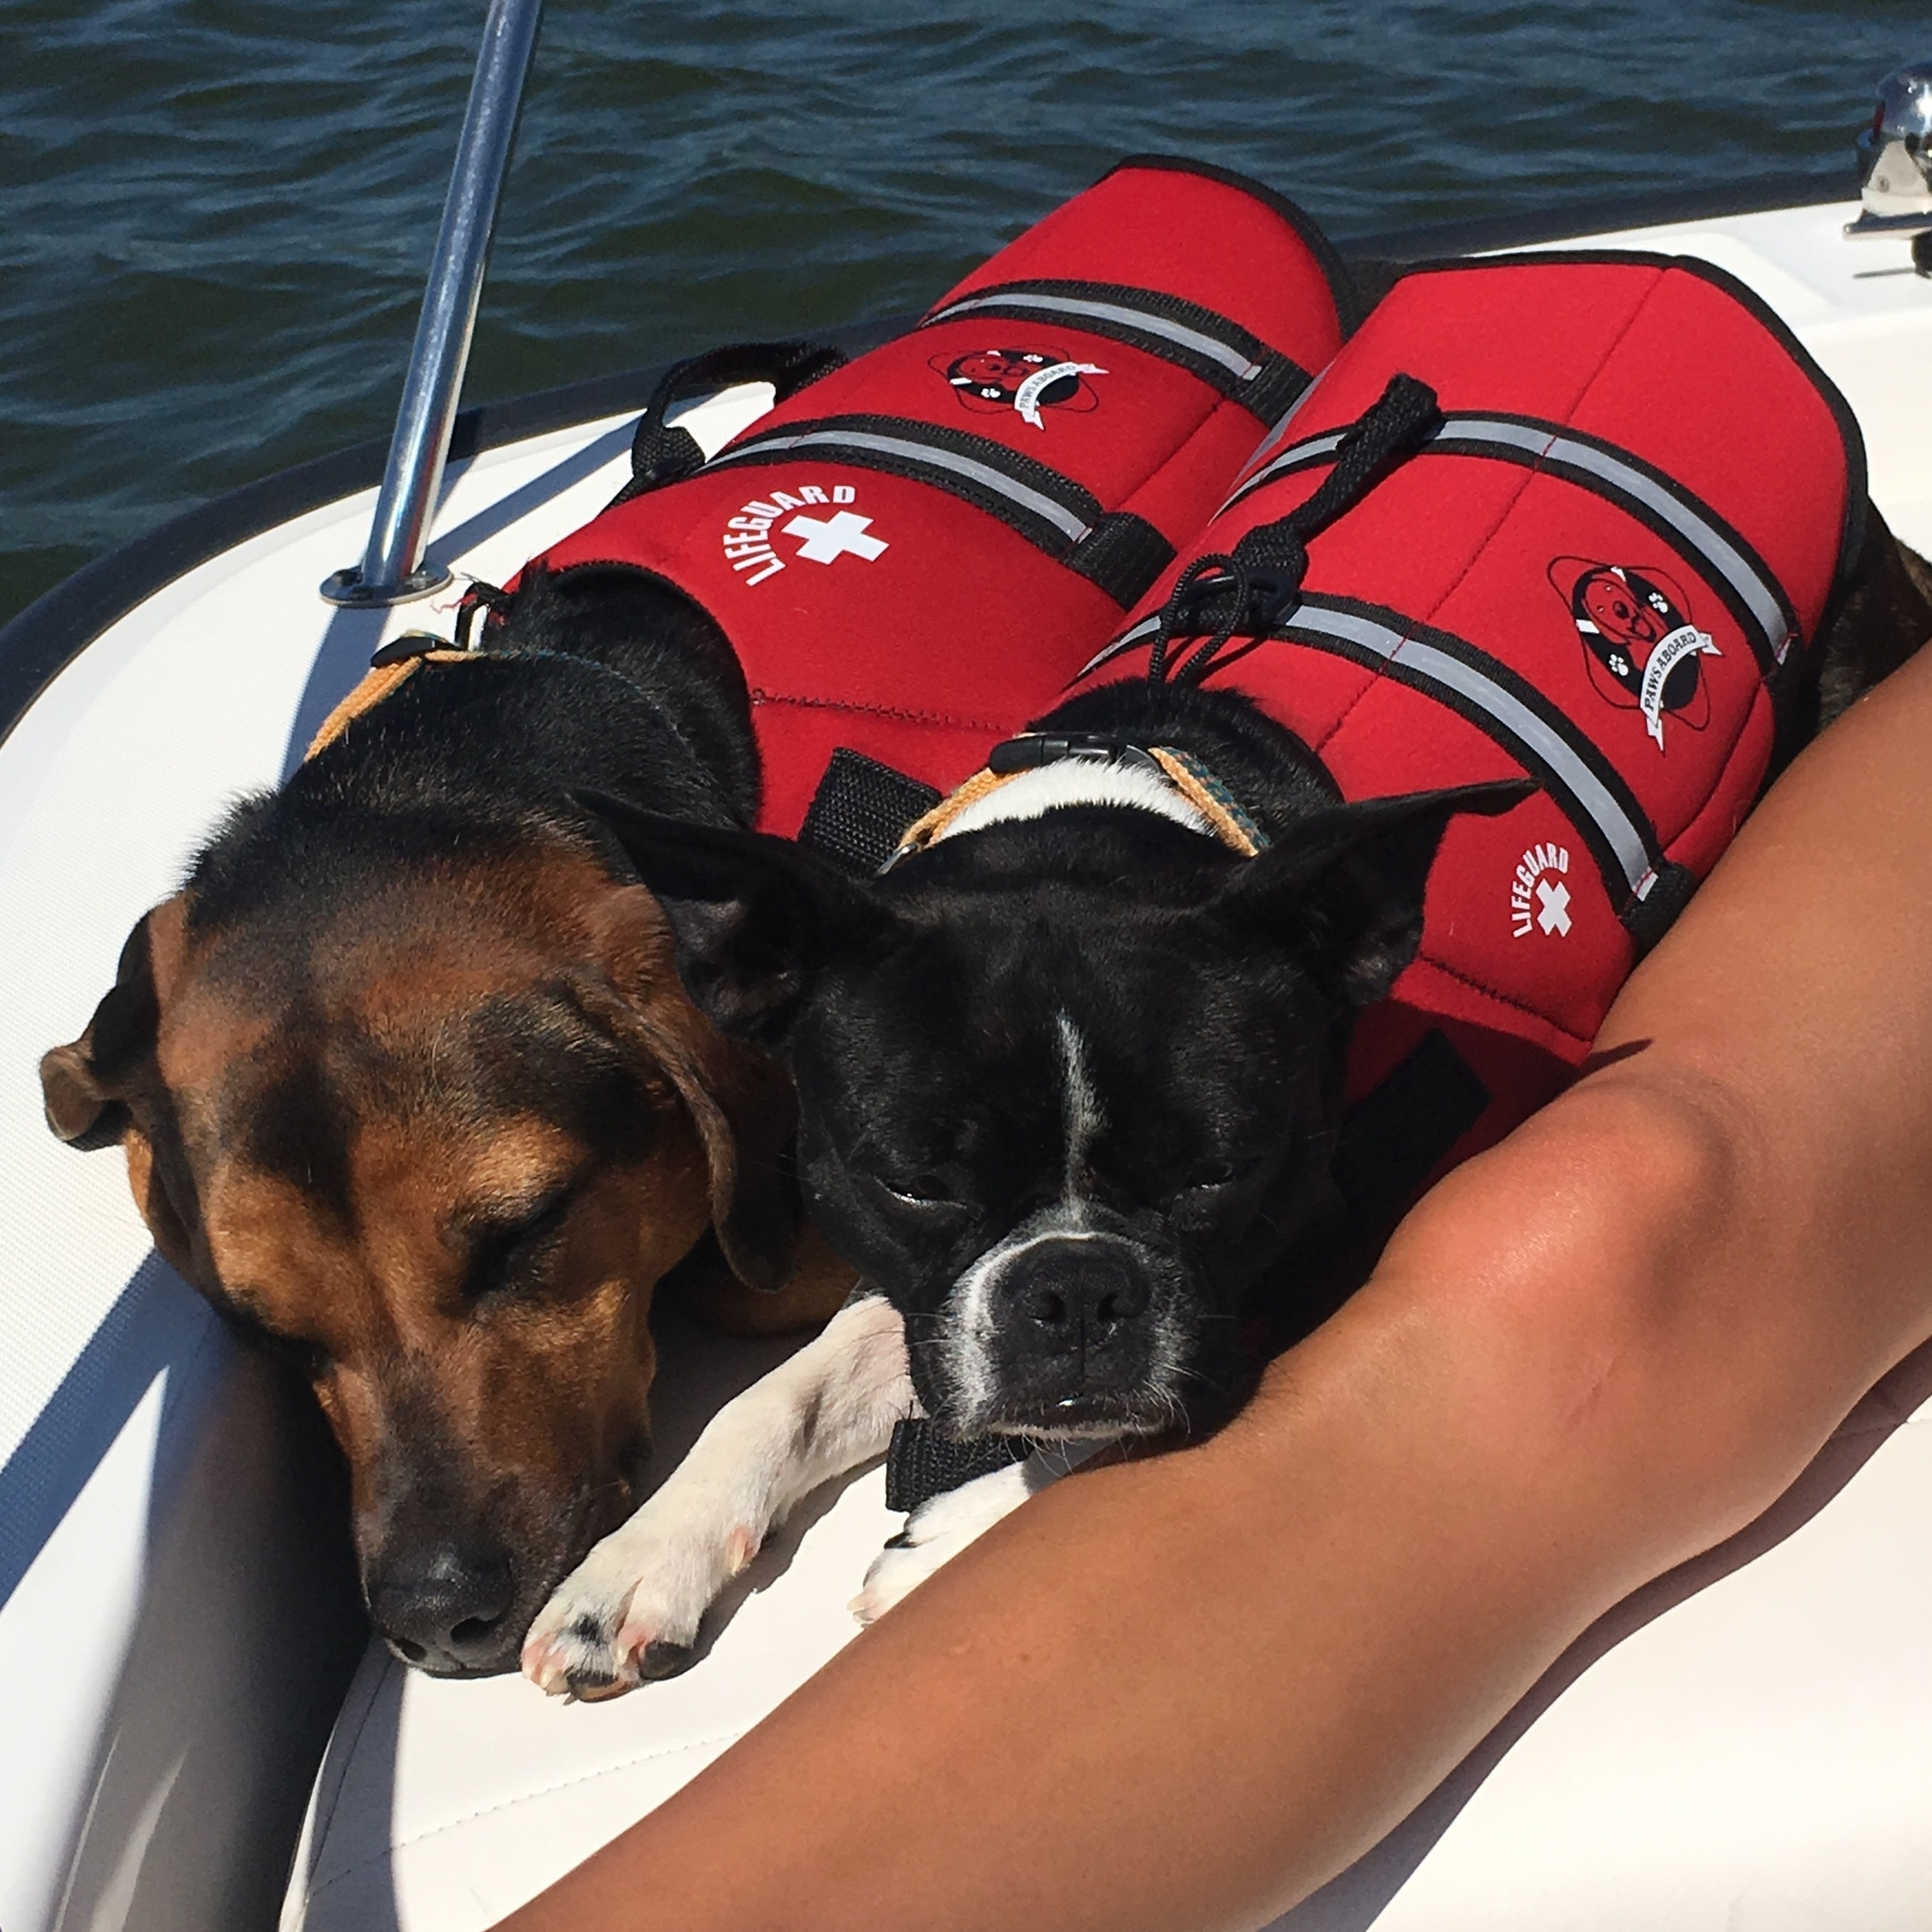 Summer and Sandy working on their tan while boating on Lake Barkley.